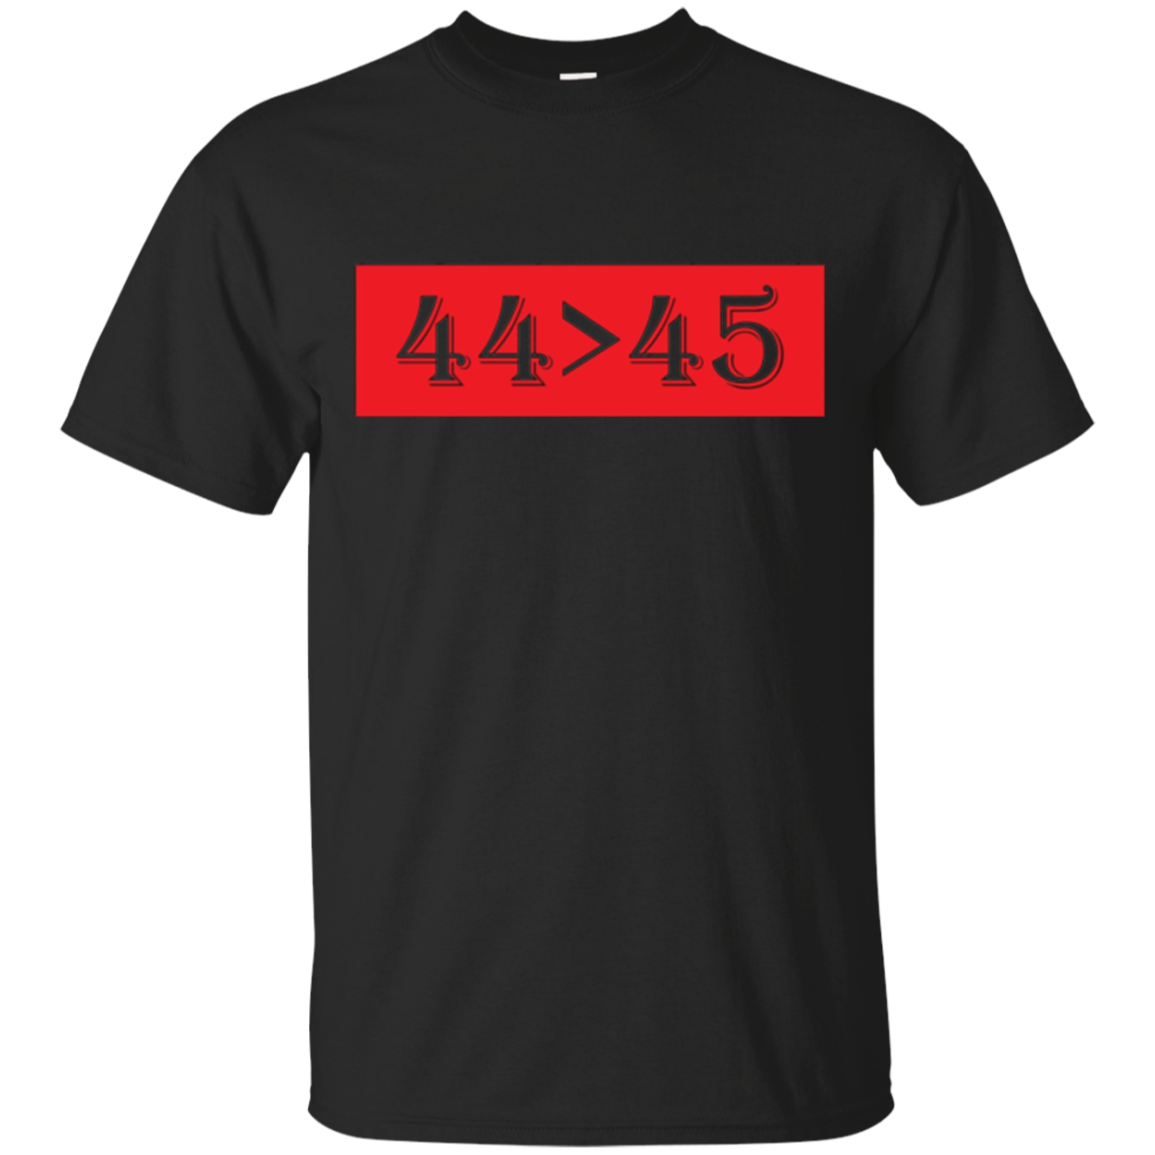 44 is Greater Than 45 T-Shirt | Funny President T-Shirt